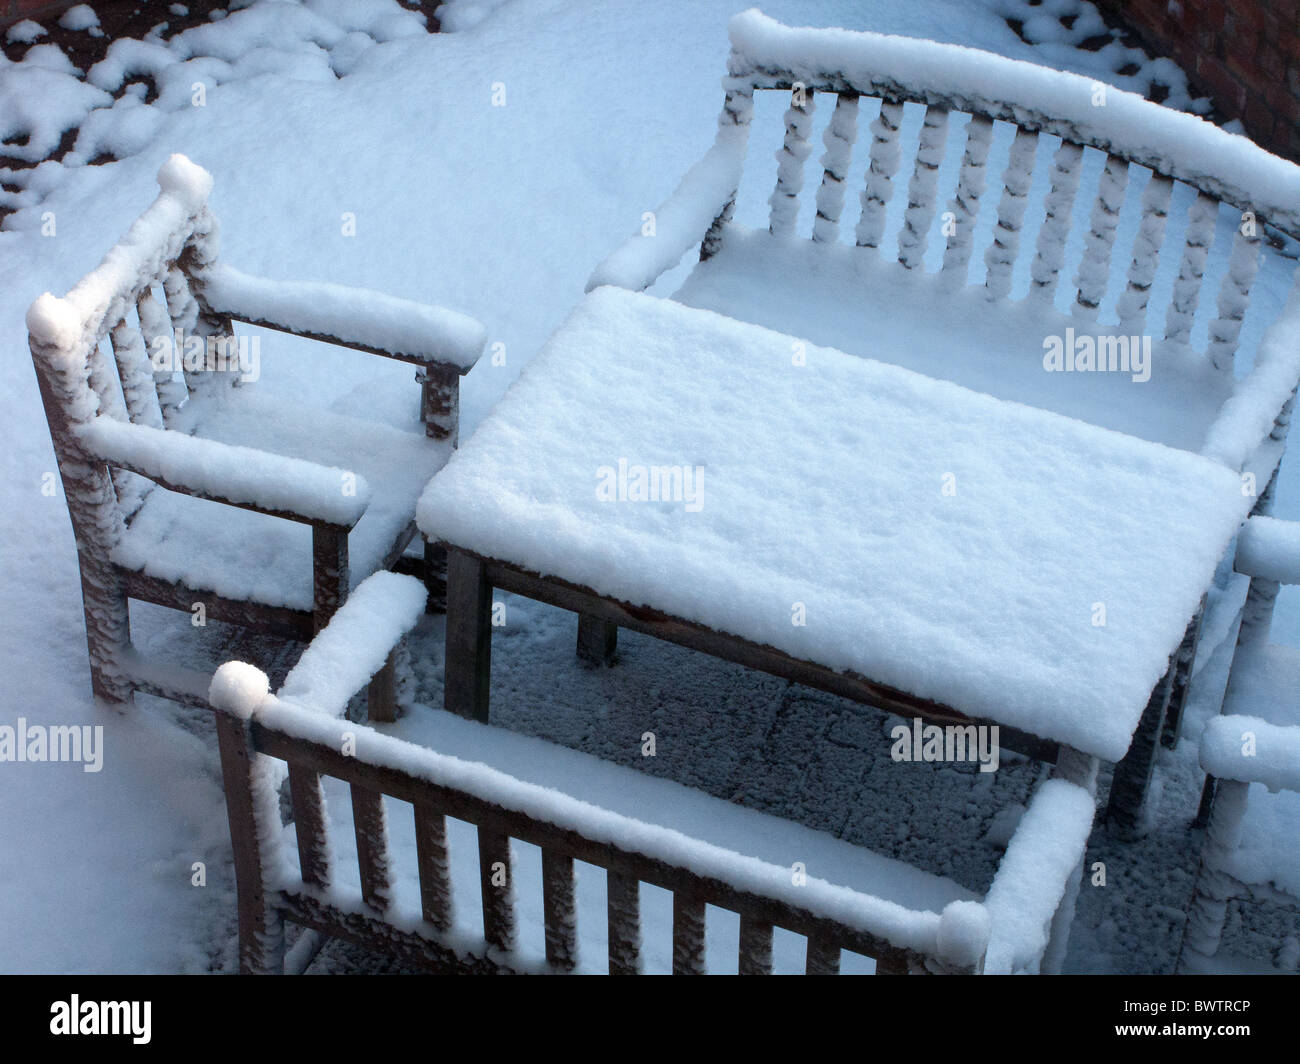 Snow Covering Outdoor Table And Chairs On Patio During Winter, London,  England.